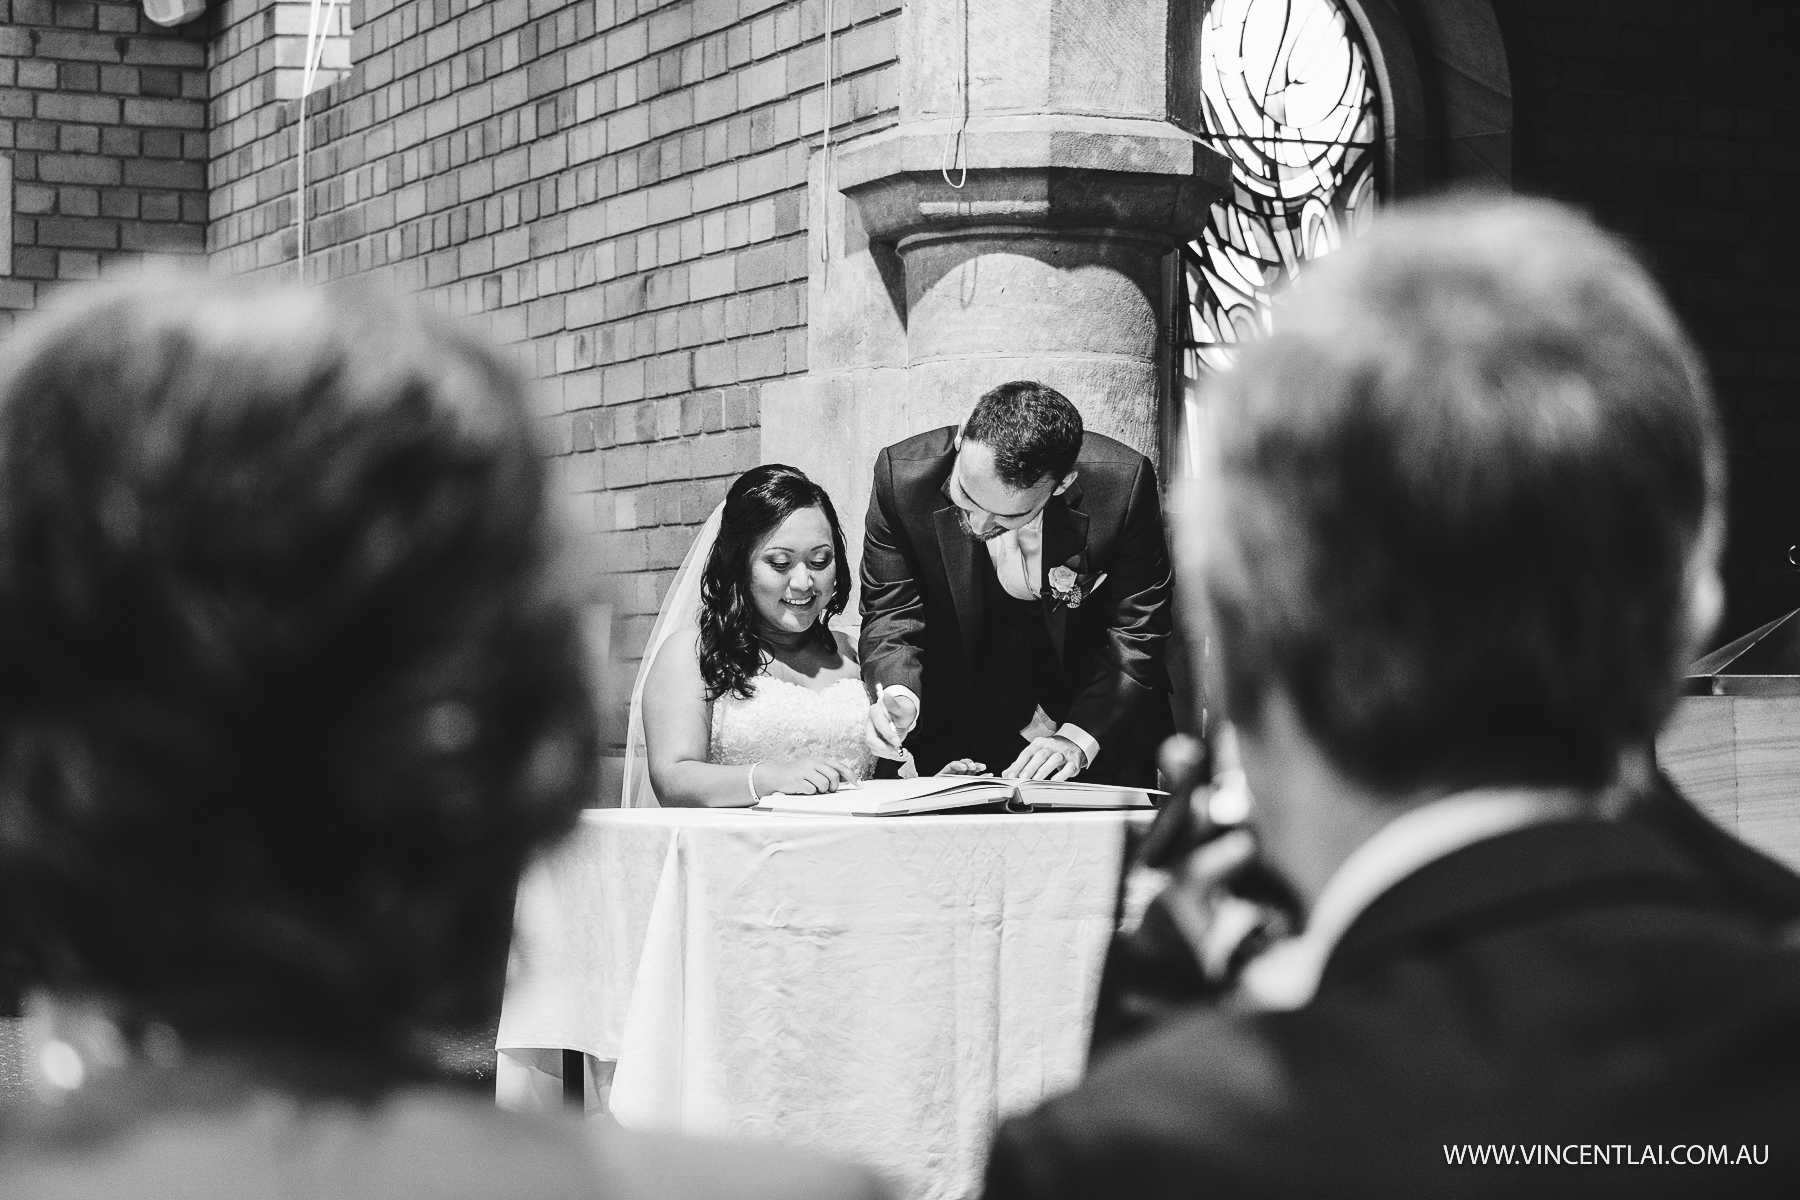 Award Winning Photojournalistic Wedding Photographer in Sydney